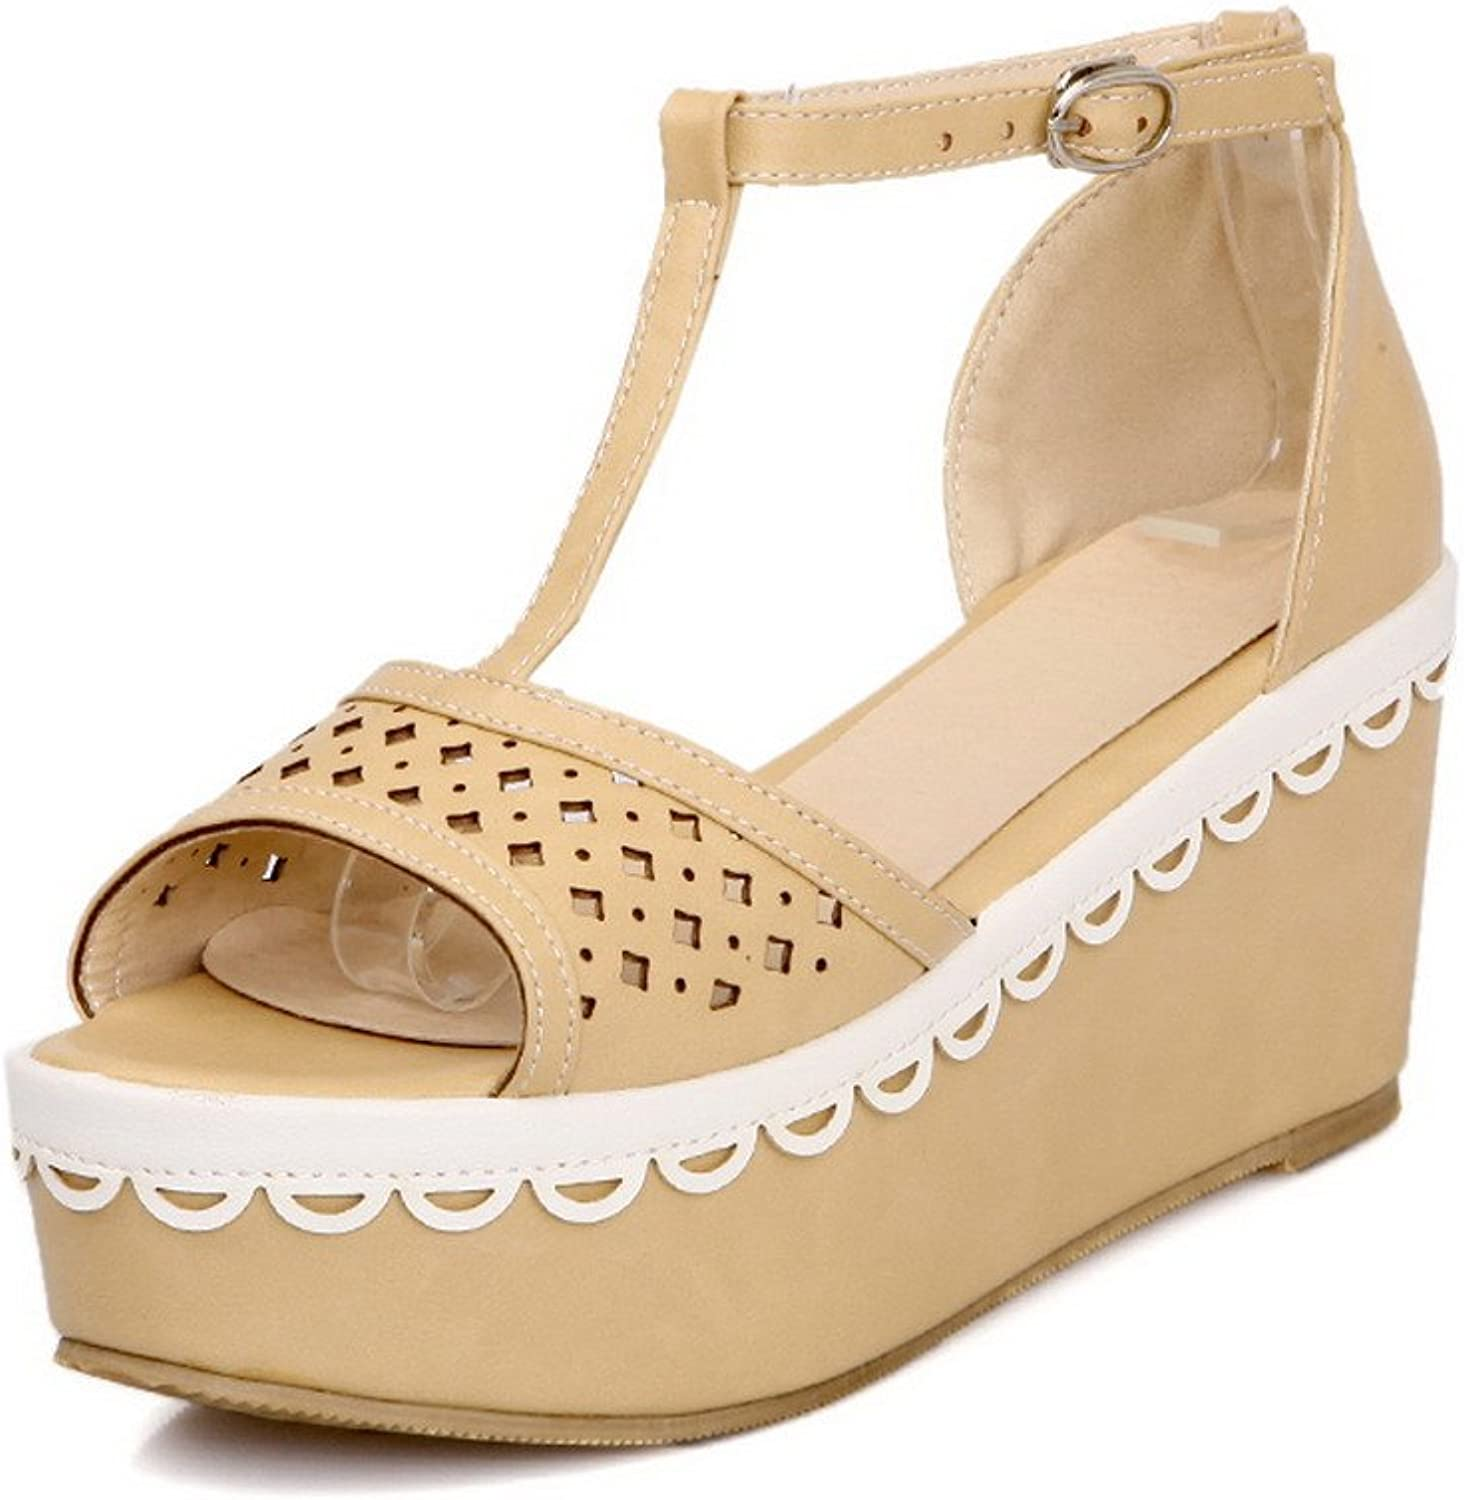 WeenFashion Womens Open Toe Kitten Heel Platform Wedge PU Soft Material Solid Sandals with Buckle, Apricot, 7.5 B(M) US